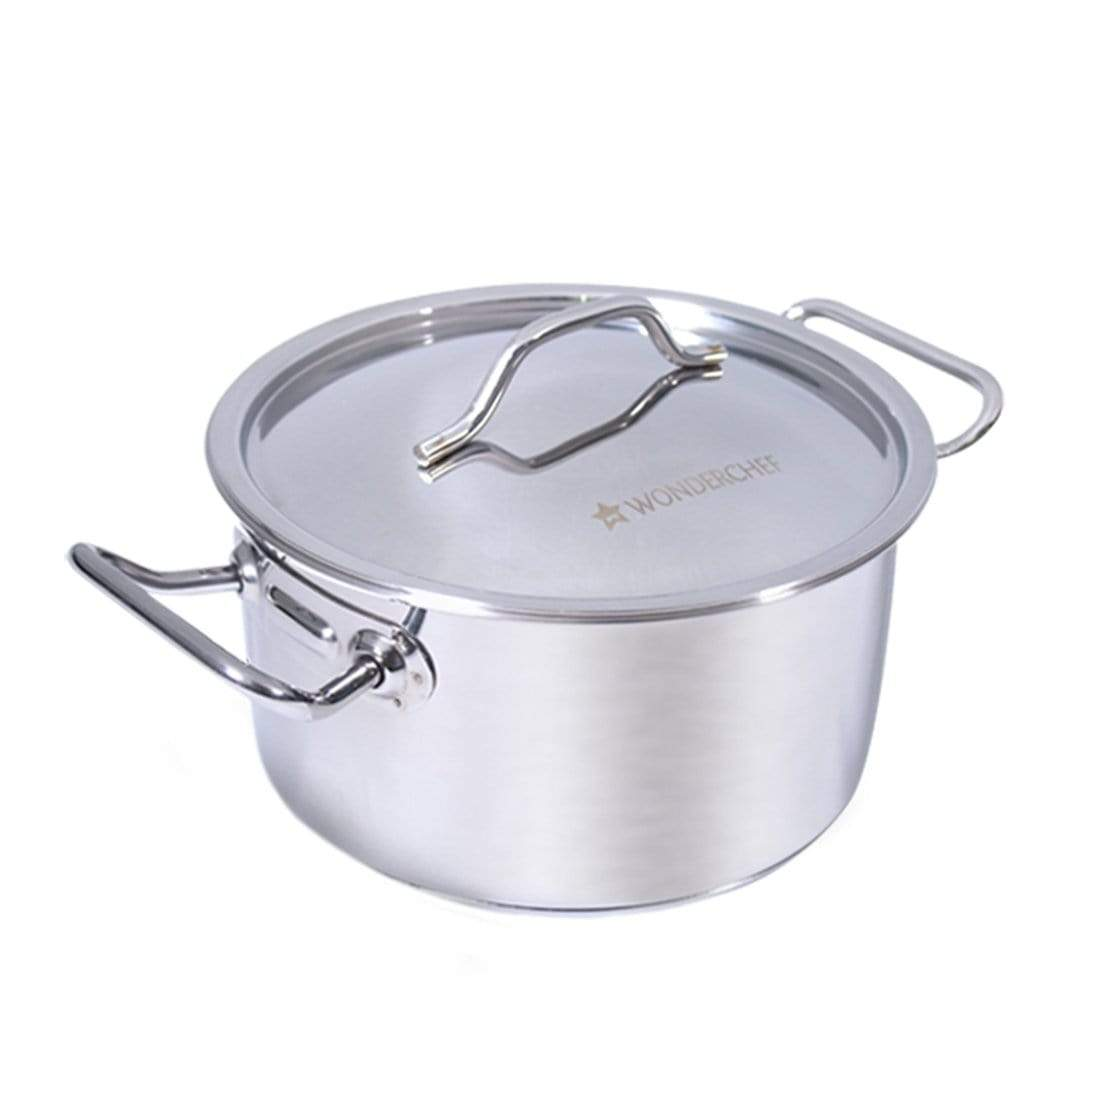 Stanton Stainless Steel Casserole with SS Lid- 20cm, 3.5L,  0.6mm